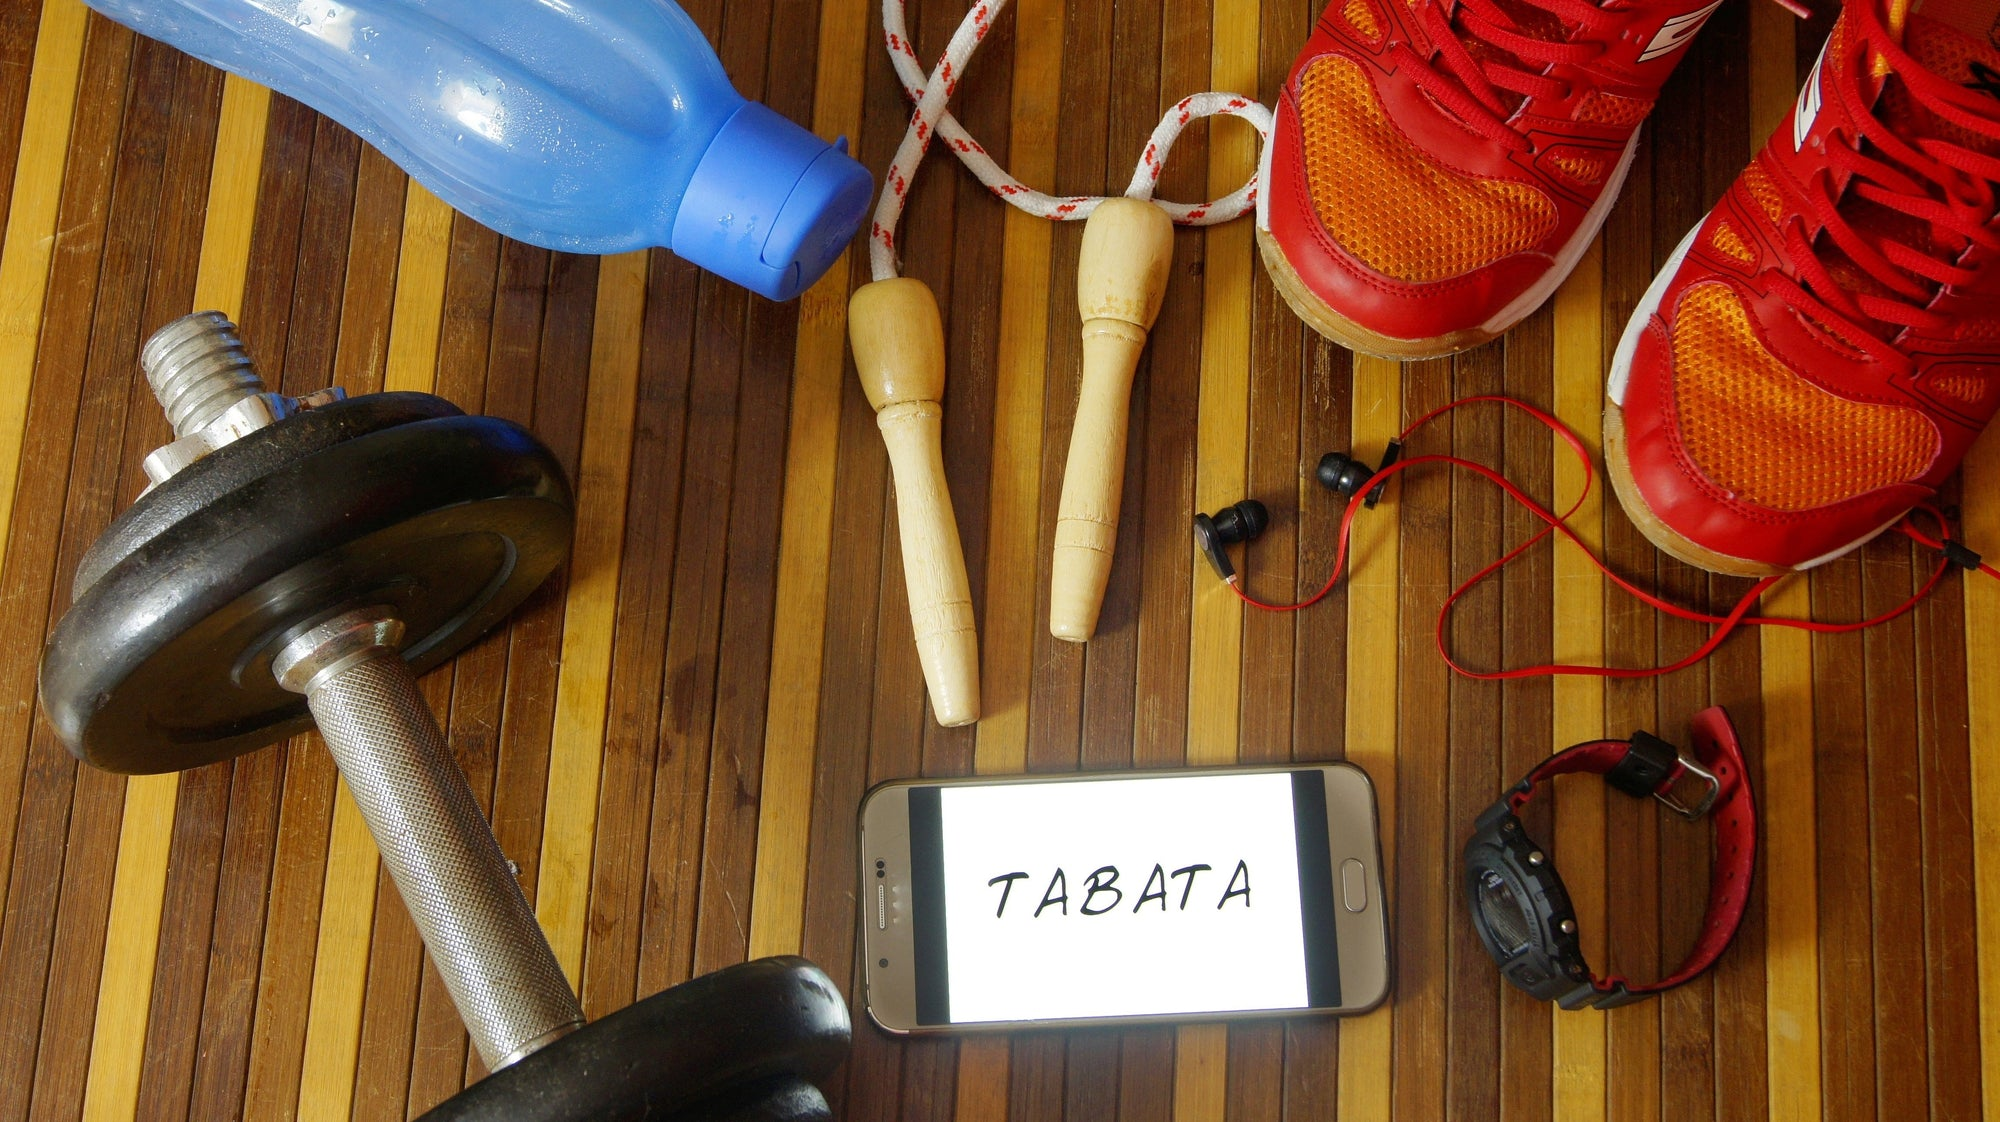 Tabata: The 4 Minute Killer Workout